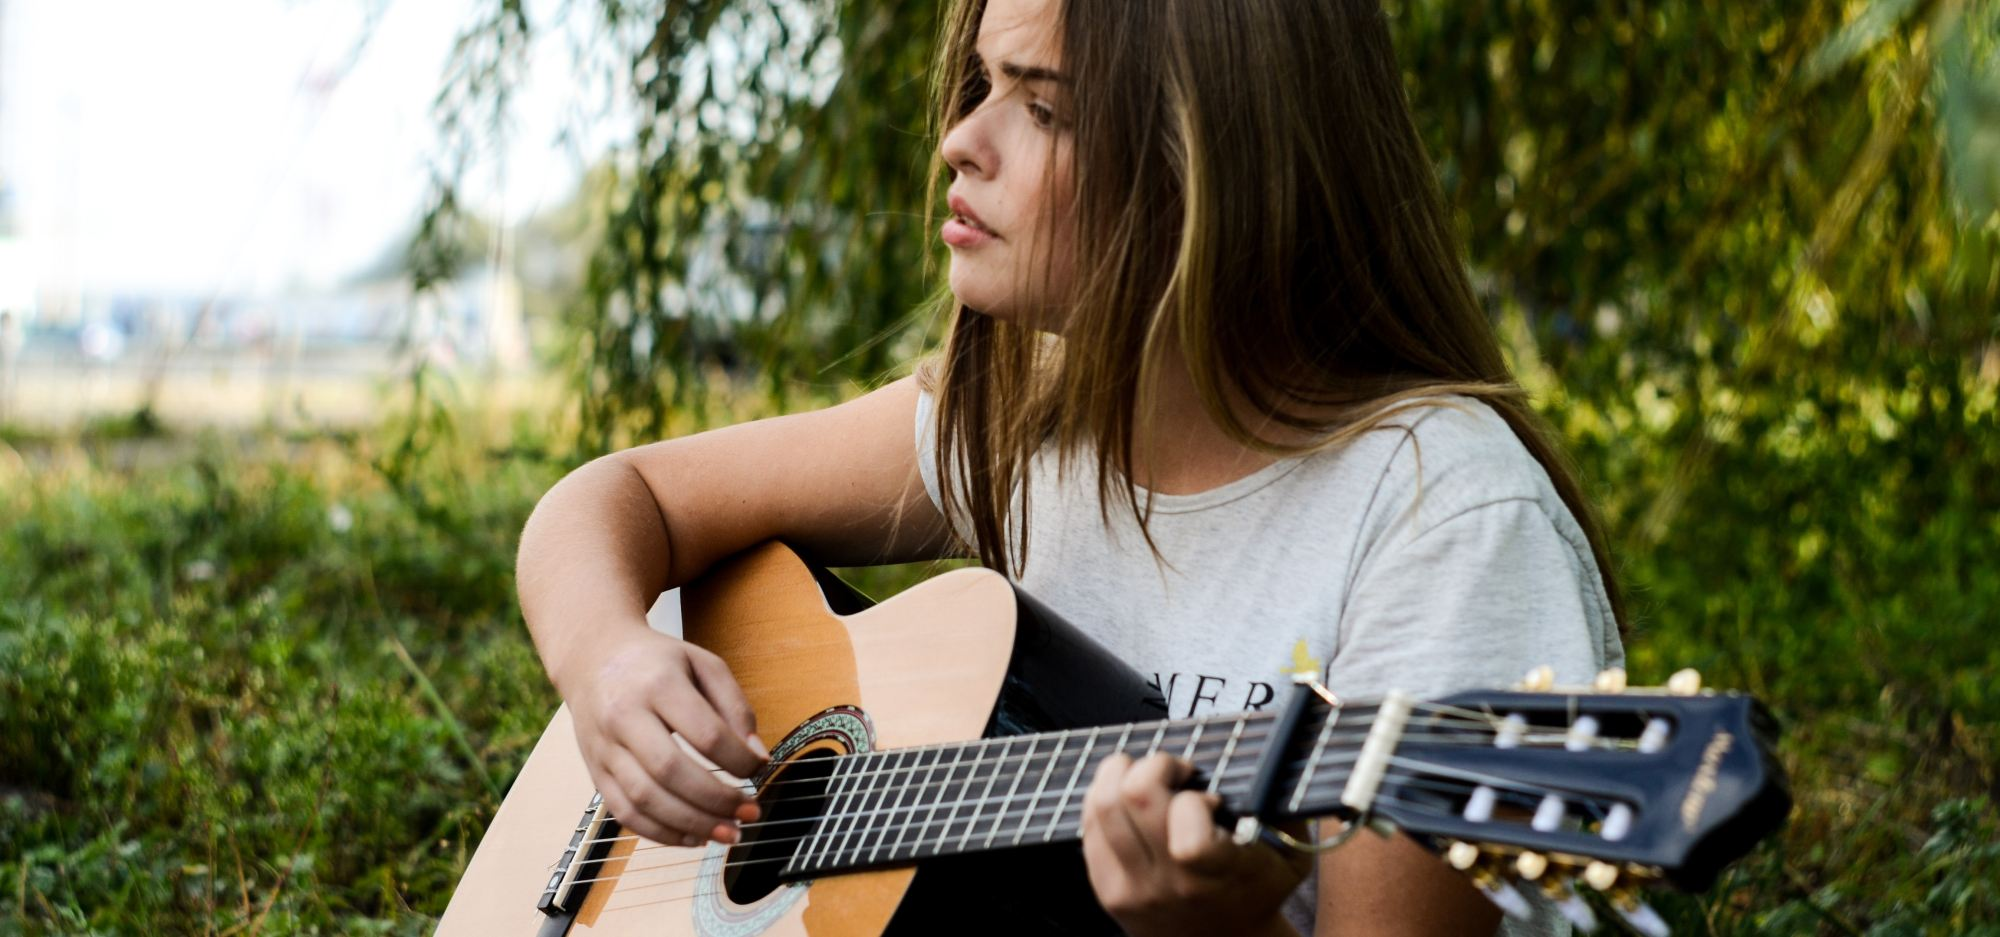 A young dark-haired woman playing acoustic guitar while sitting on grass.